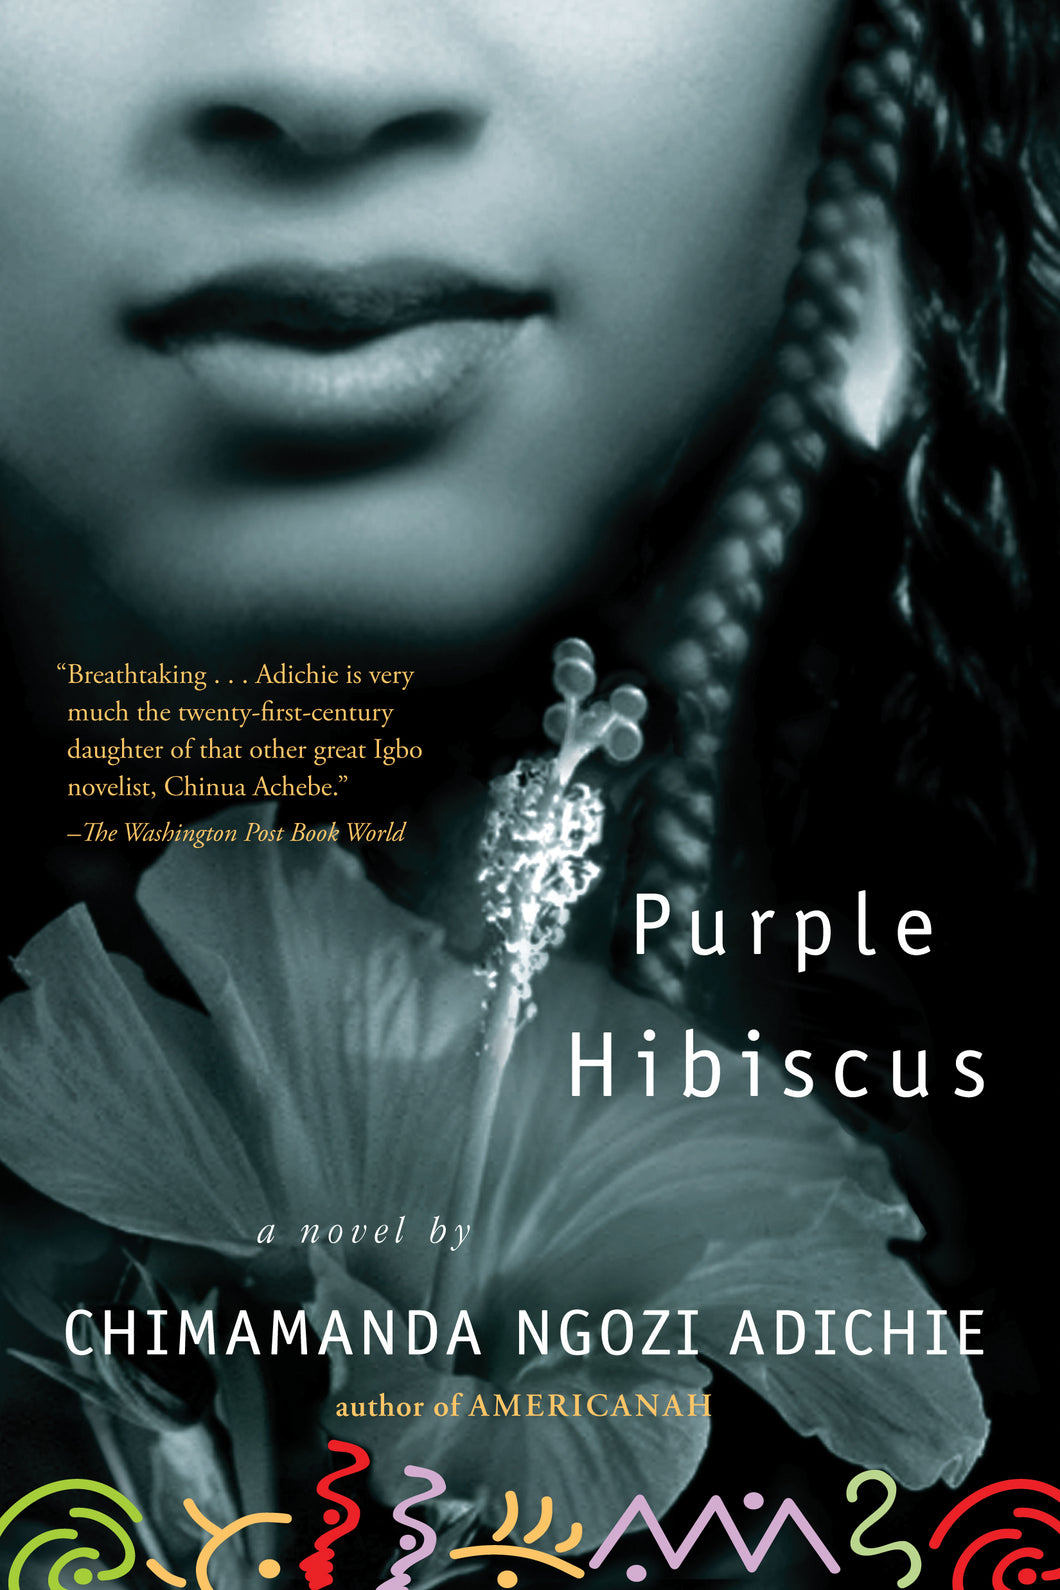 Purple Hibiscus By Chimamanda Ngozi Adichie Other Books